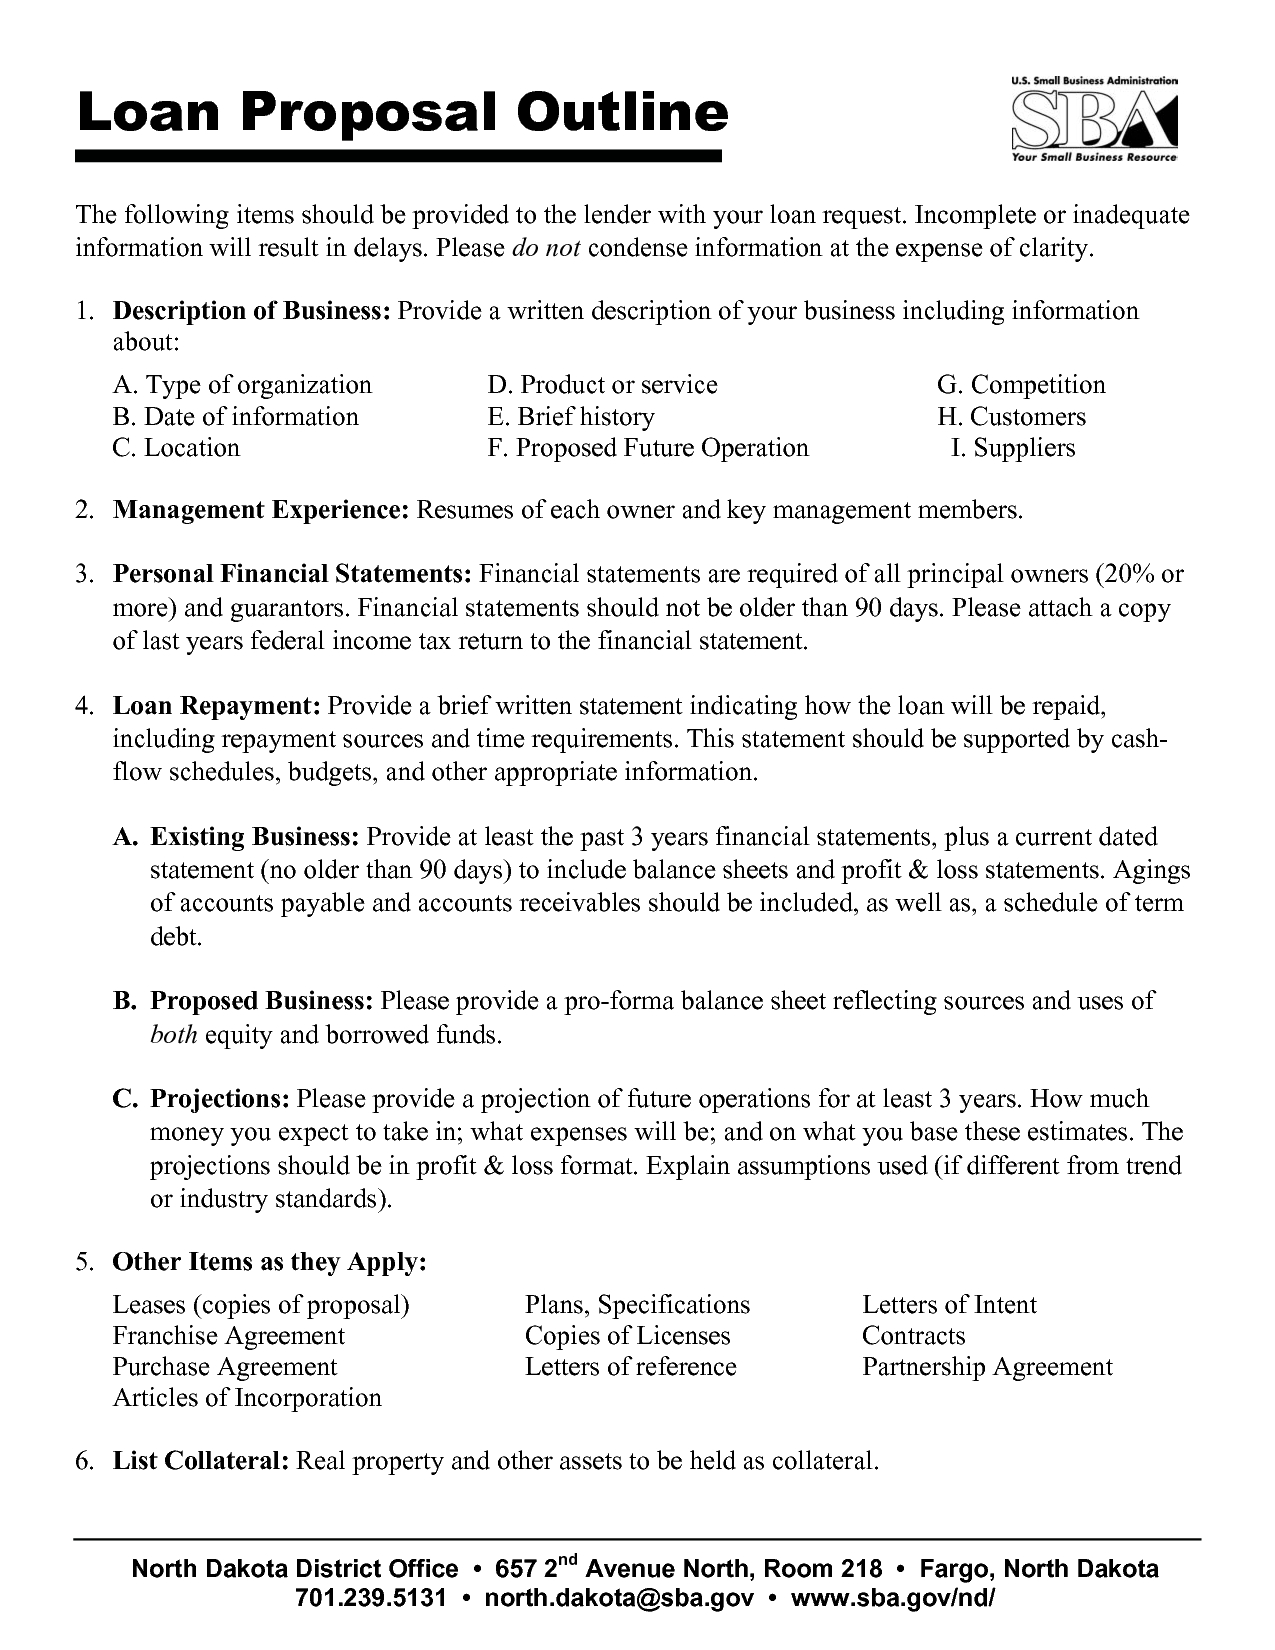 How Write Business Loan Proposal Letter Cover Templates Application With Business Proposal For Bank Loan Template